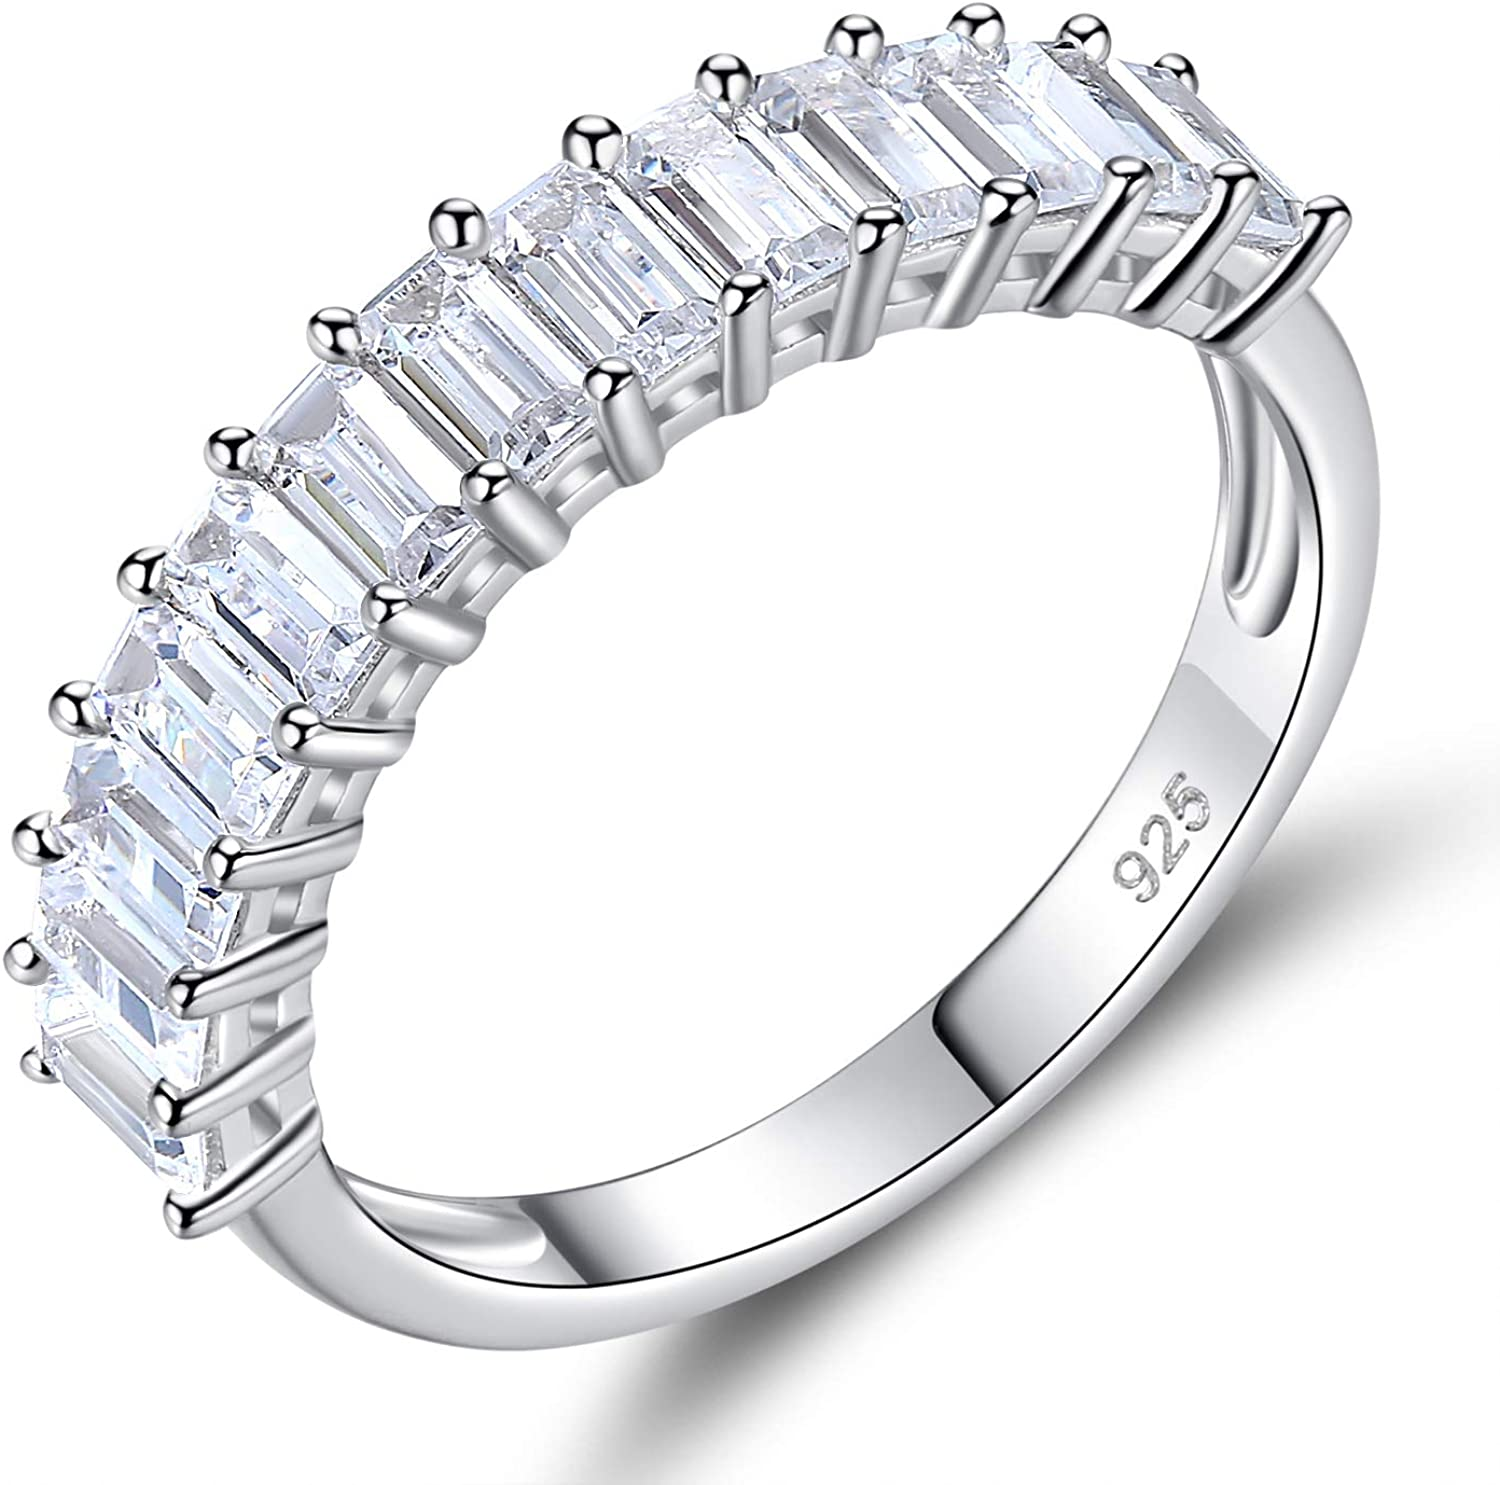 Newshe Eternity Rings for Women Engagement Wedding Bands Sterling Silver 1.3Ct Cz Emerald Size 5-10